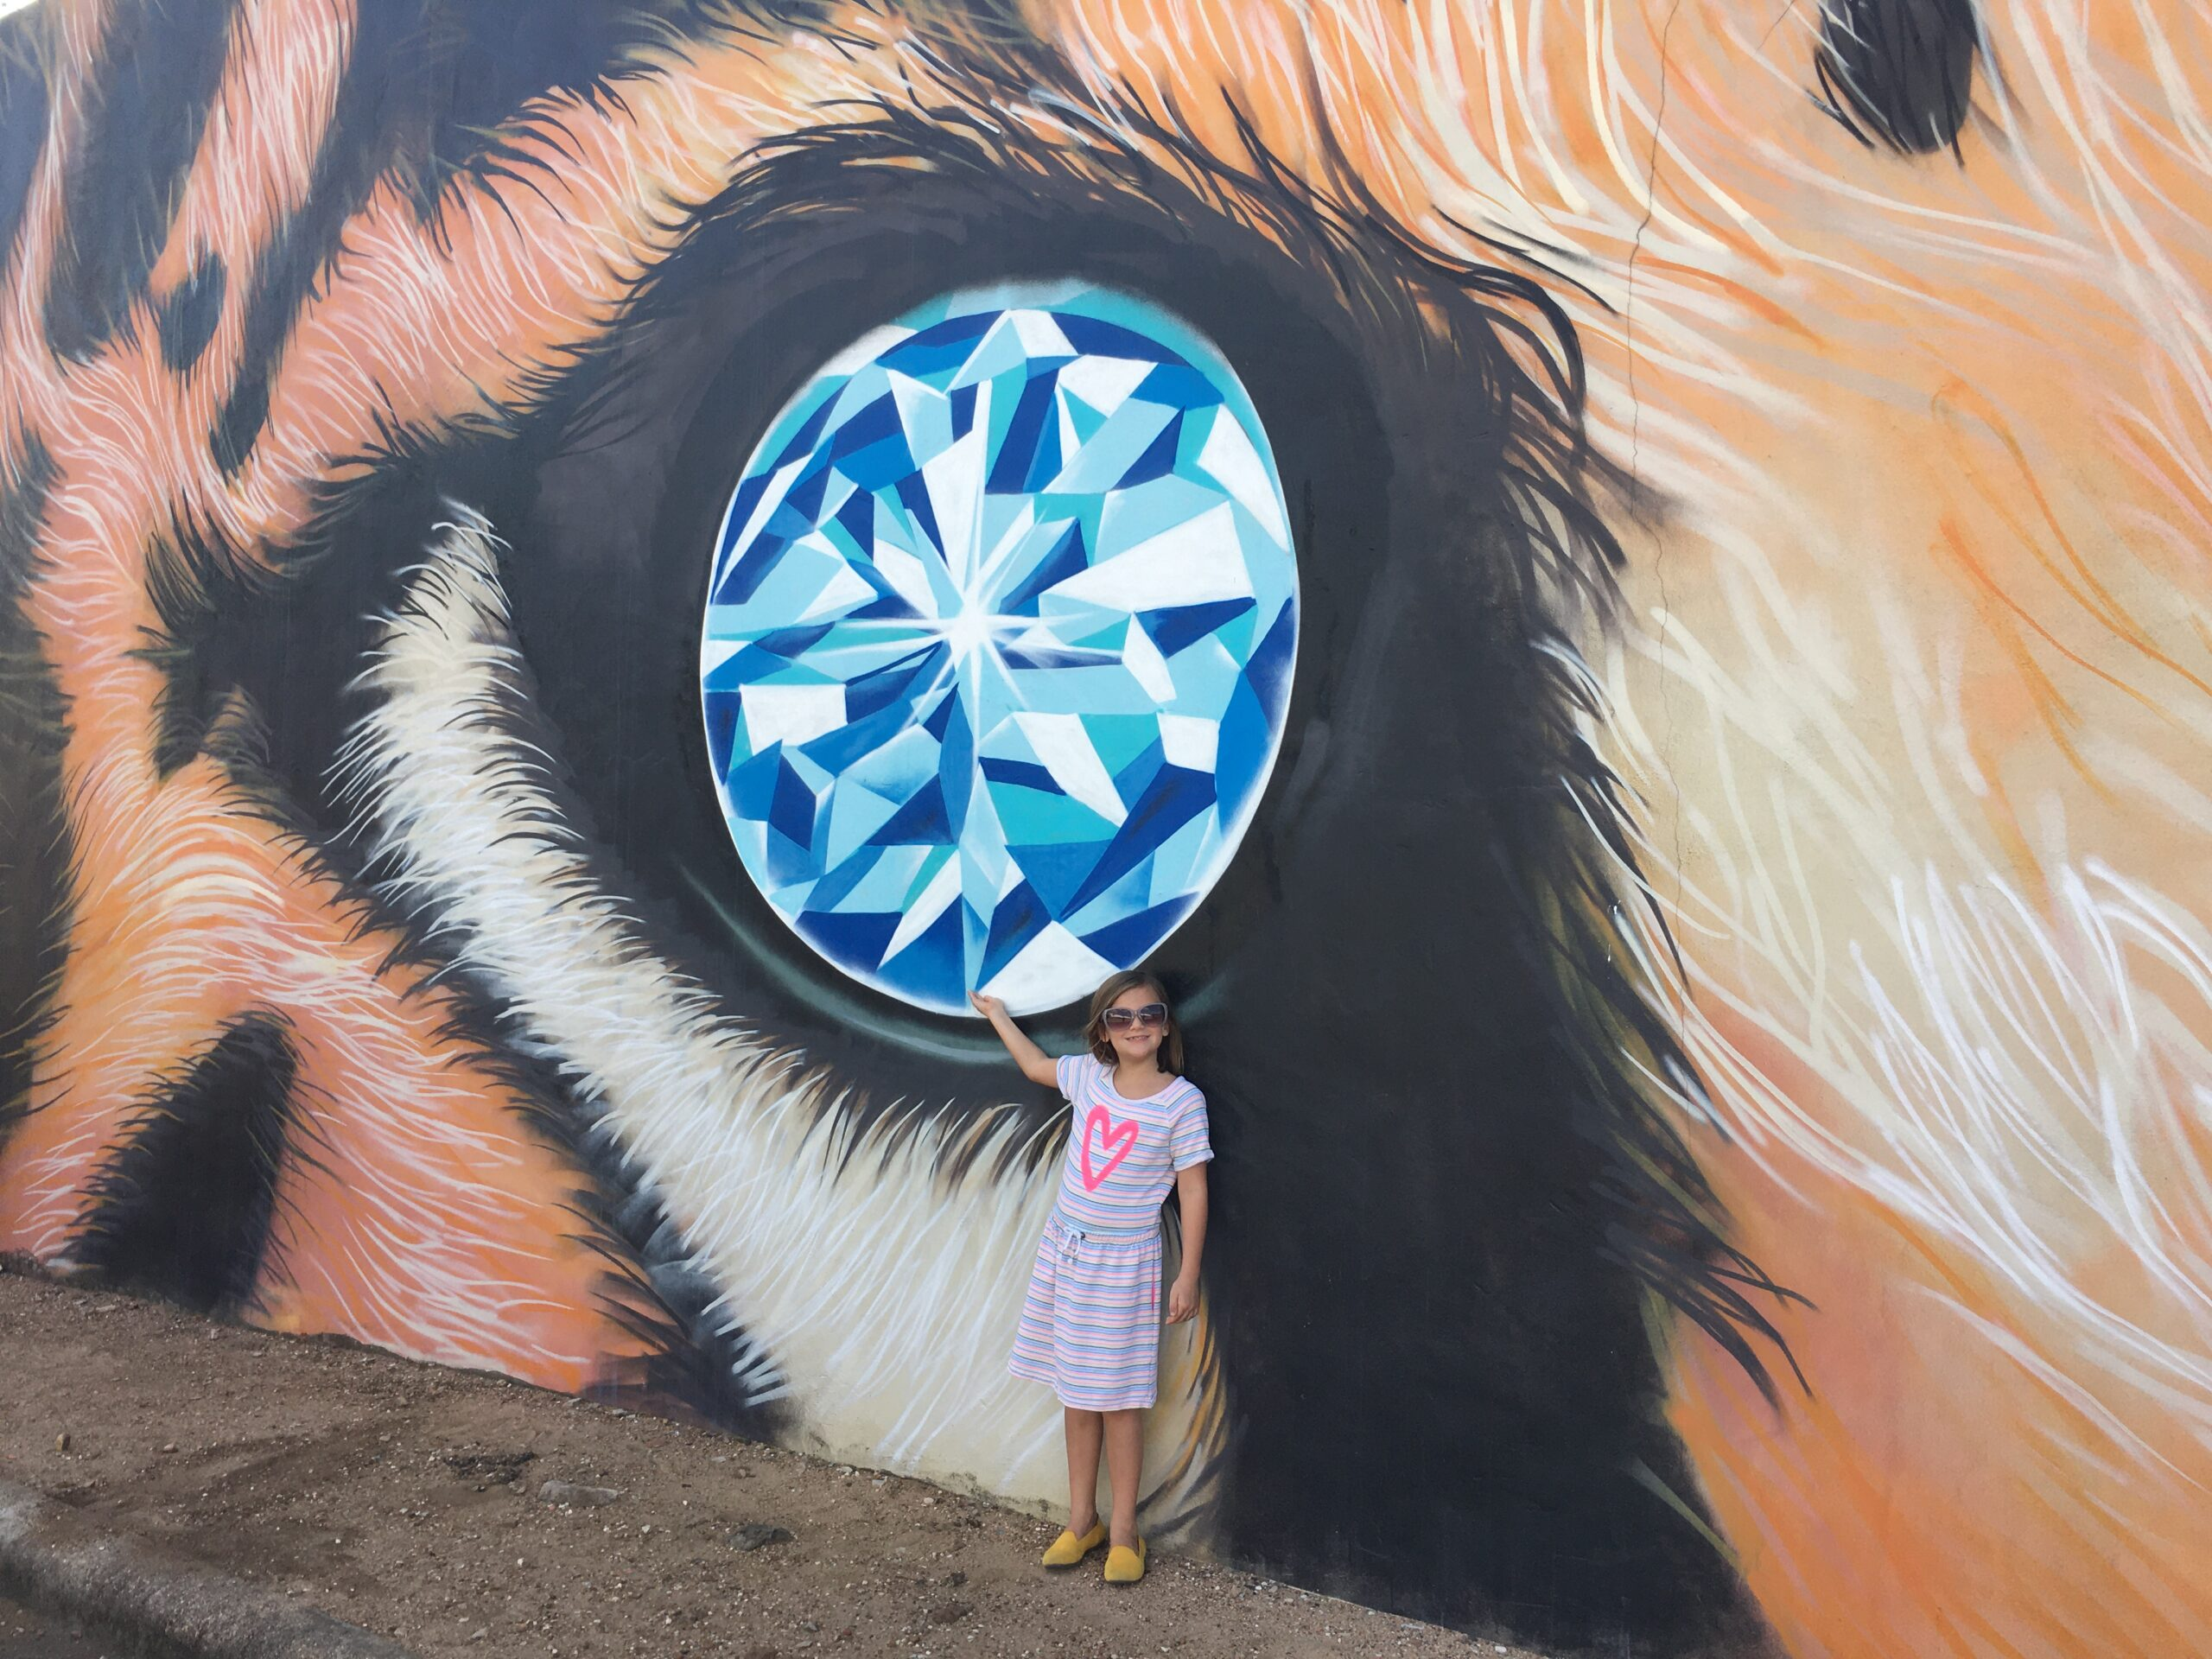 blonde girl wearing sunglasses and a dress in front a of large mural that depicts a tigers face and a diamond eye